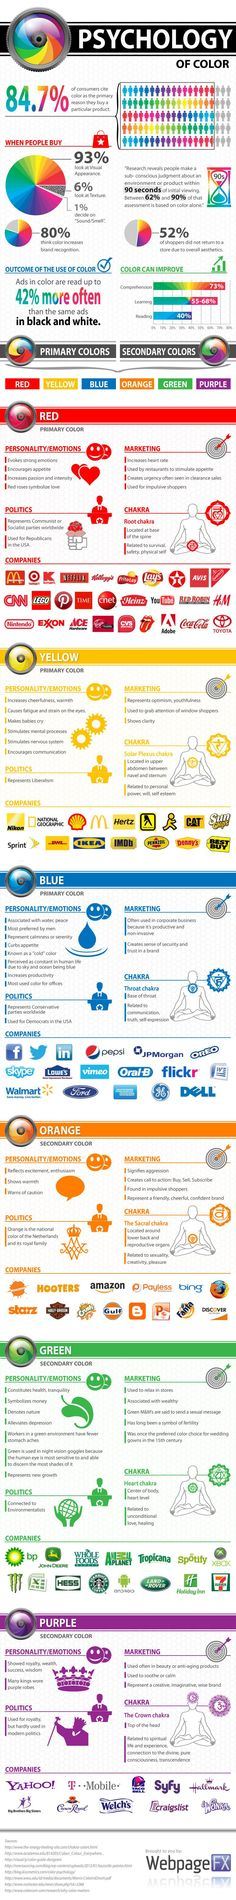 "Small Business Trends: Psychology of Color in Marketing, by David Wallace ""The following infographic, created by the folks at WebpageFX, takes a look at the psychology of color and presents some common associations of different colors. It also shows the overall importance of color to consumers..."""